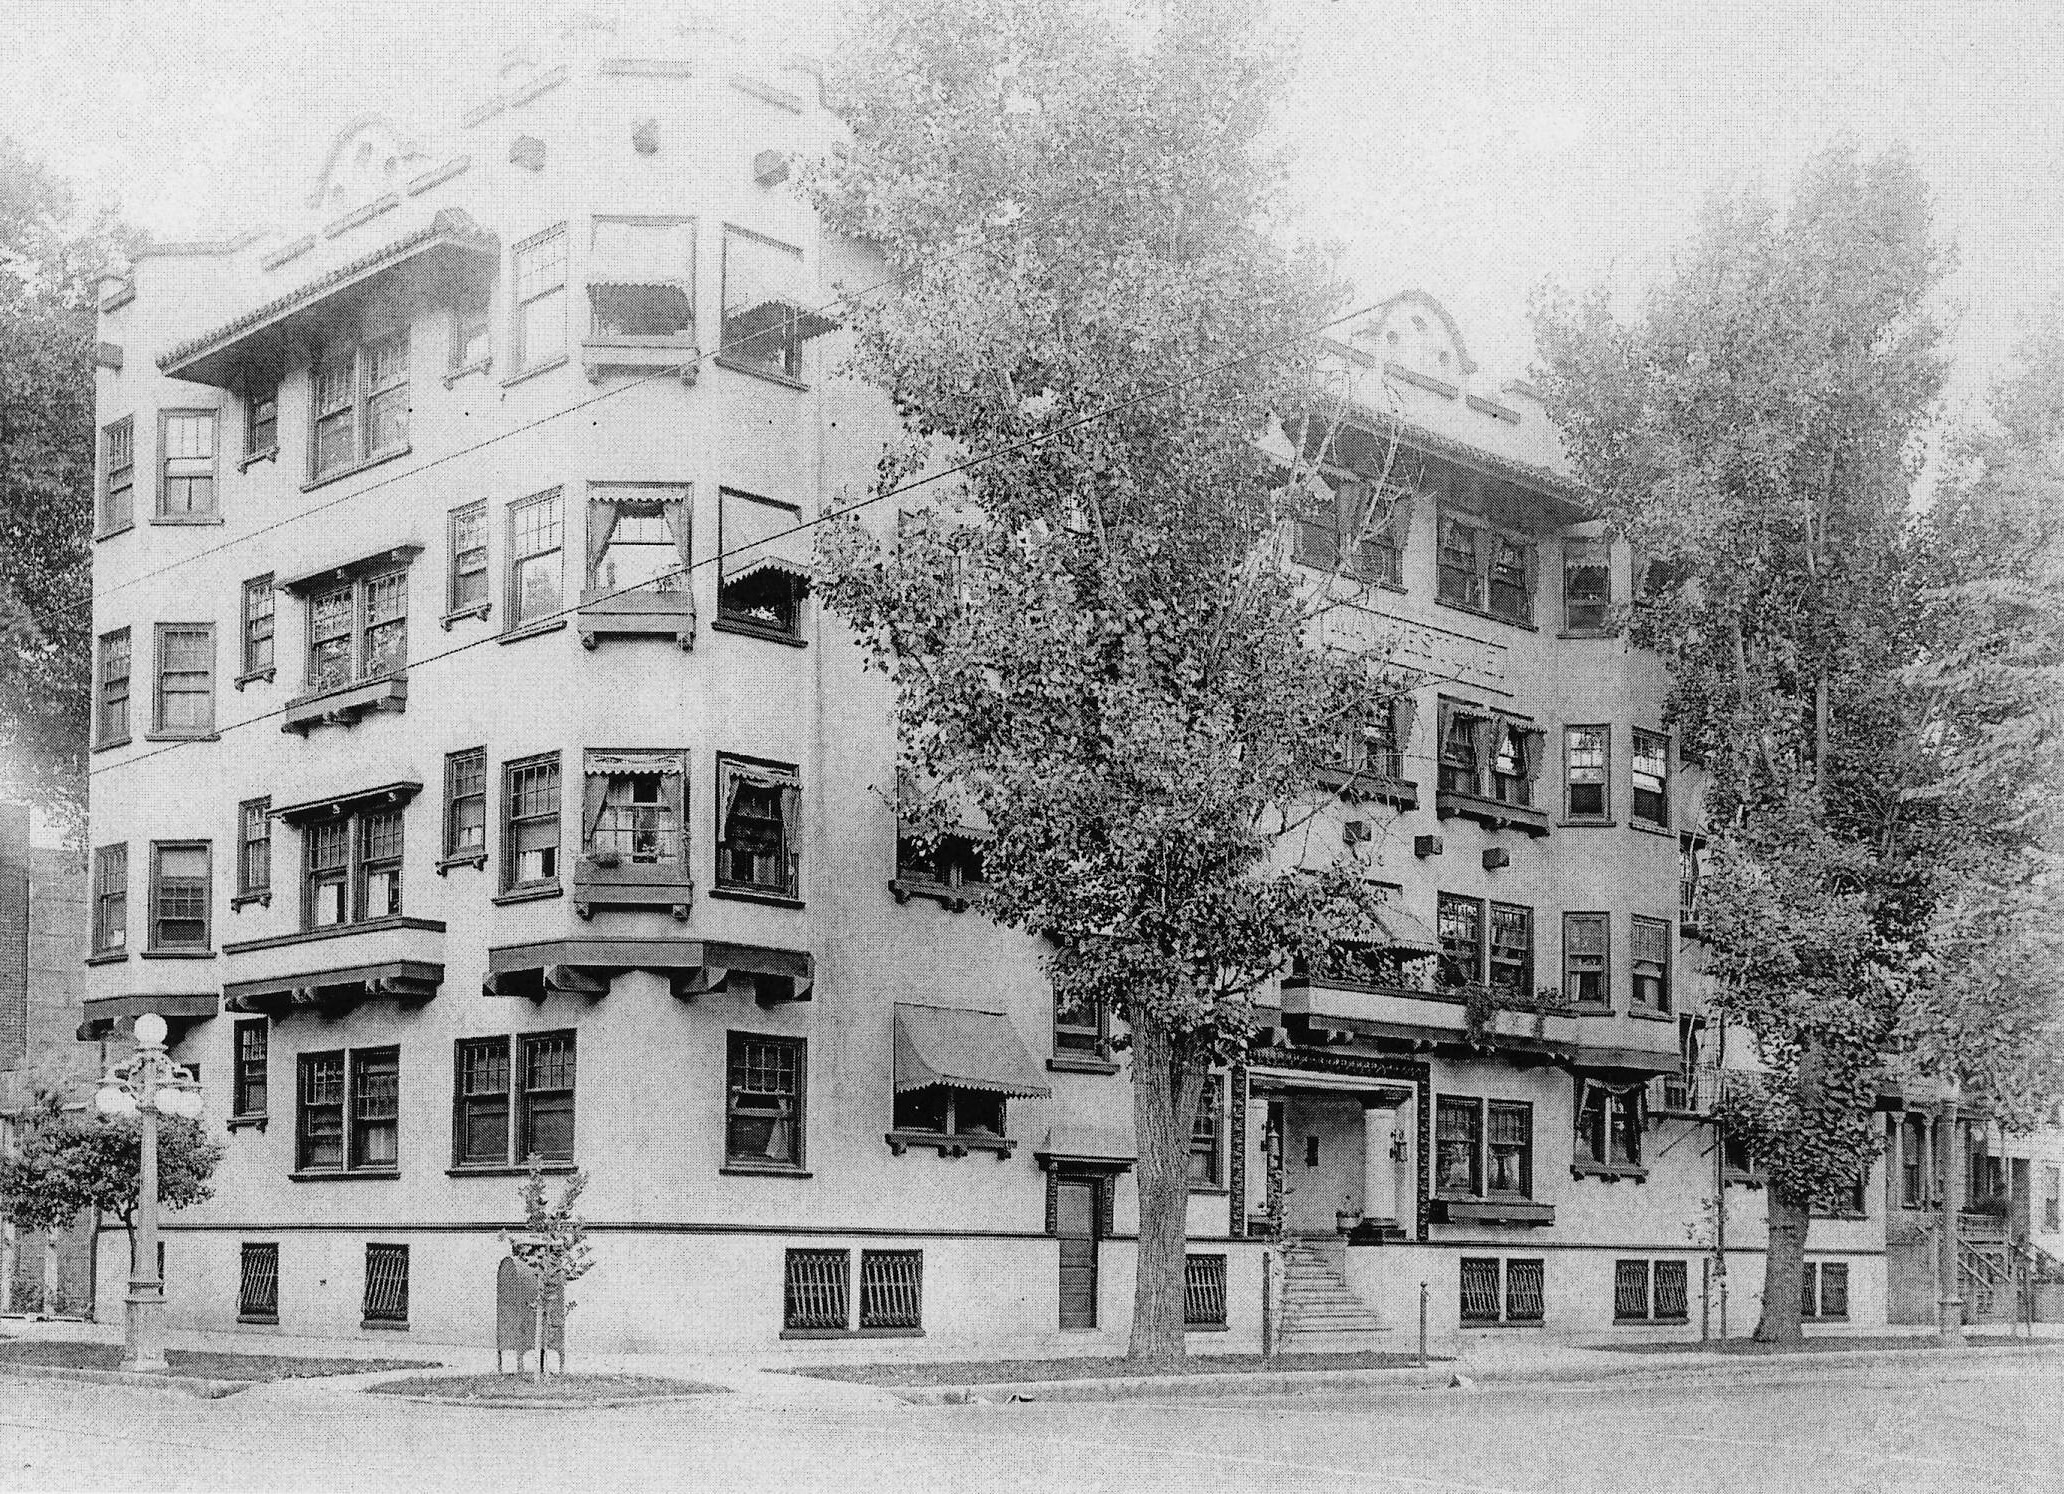 Historic photo of the Maydestone Apartments